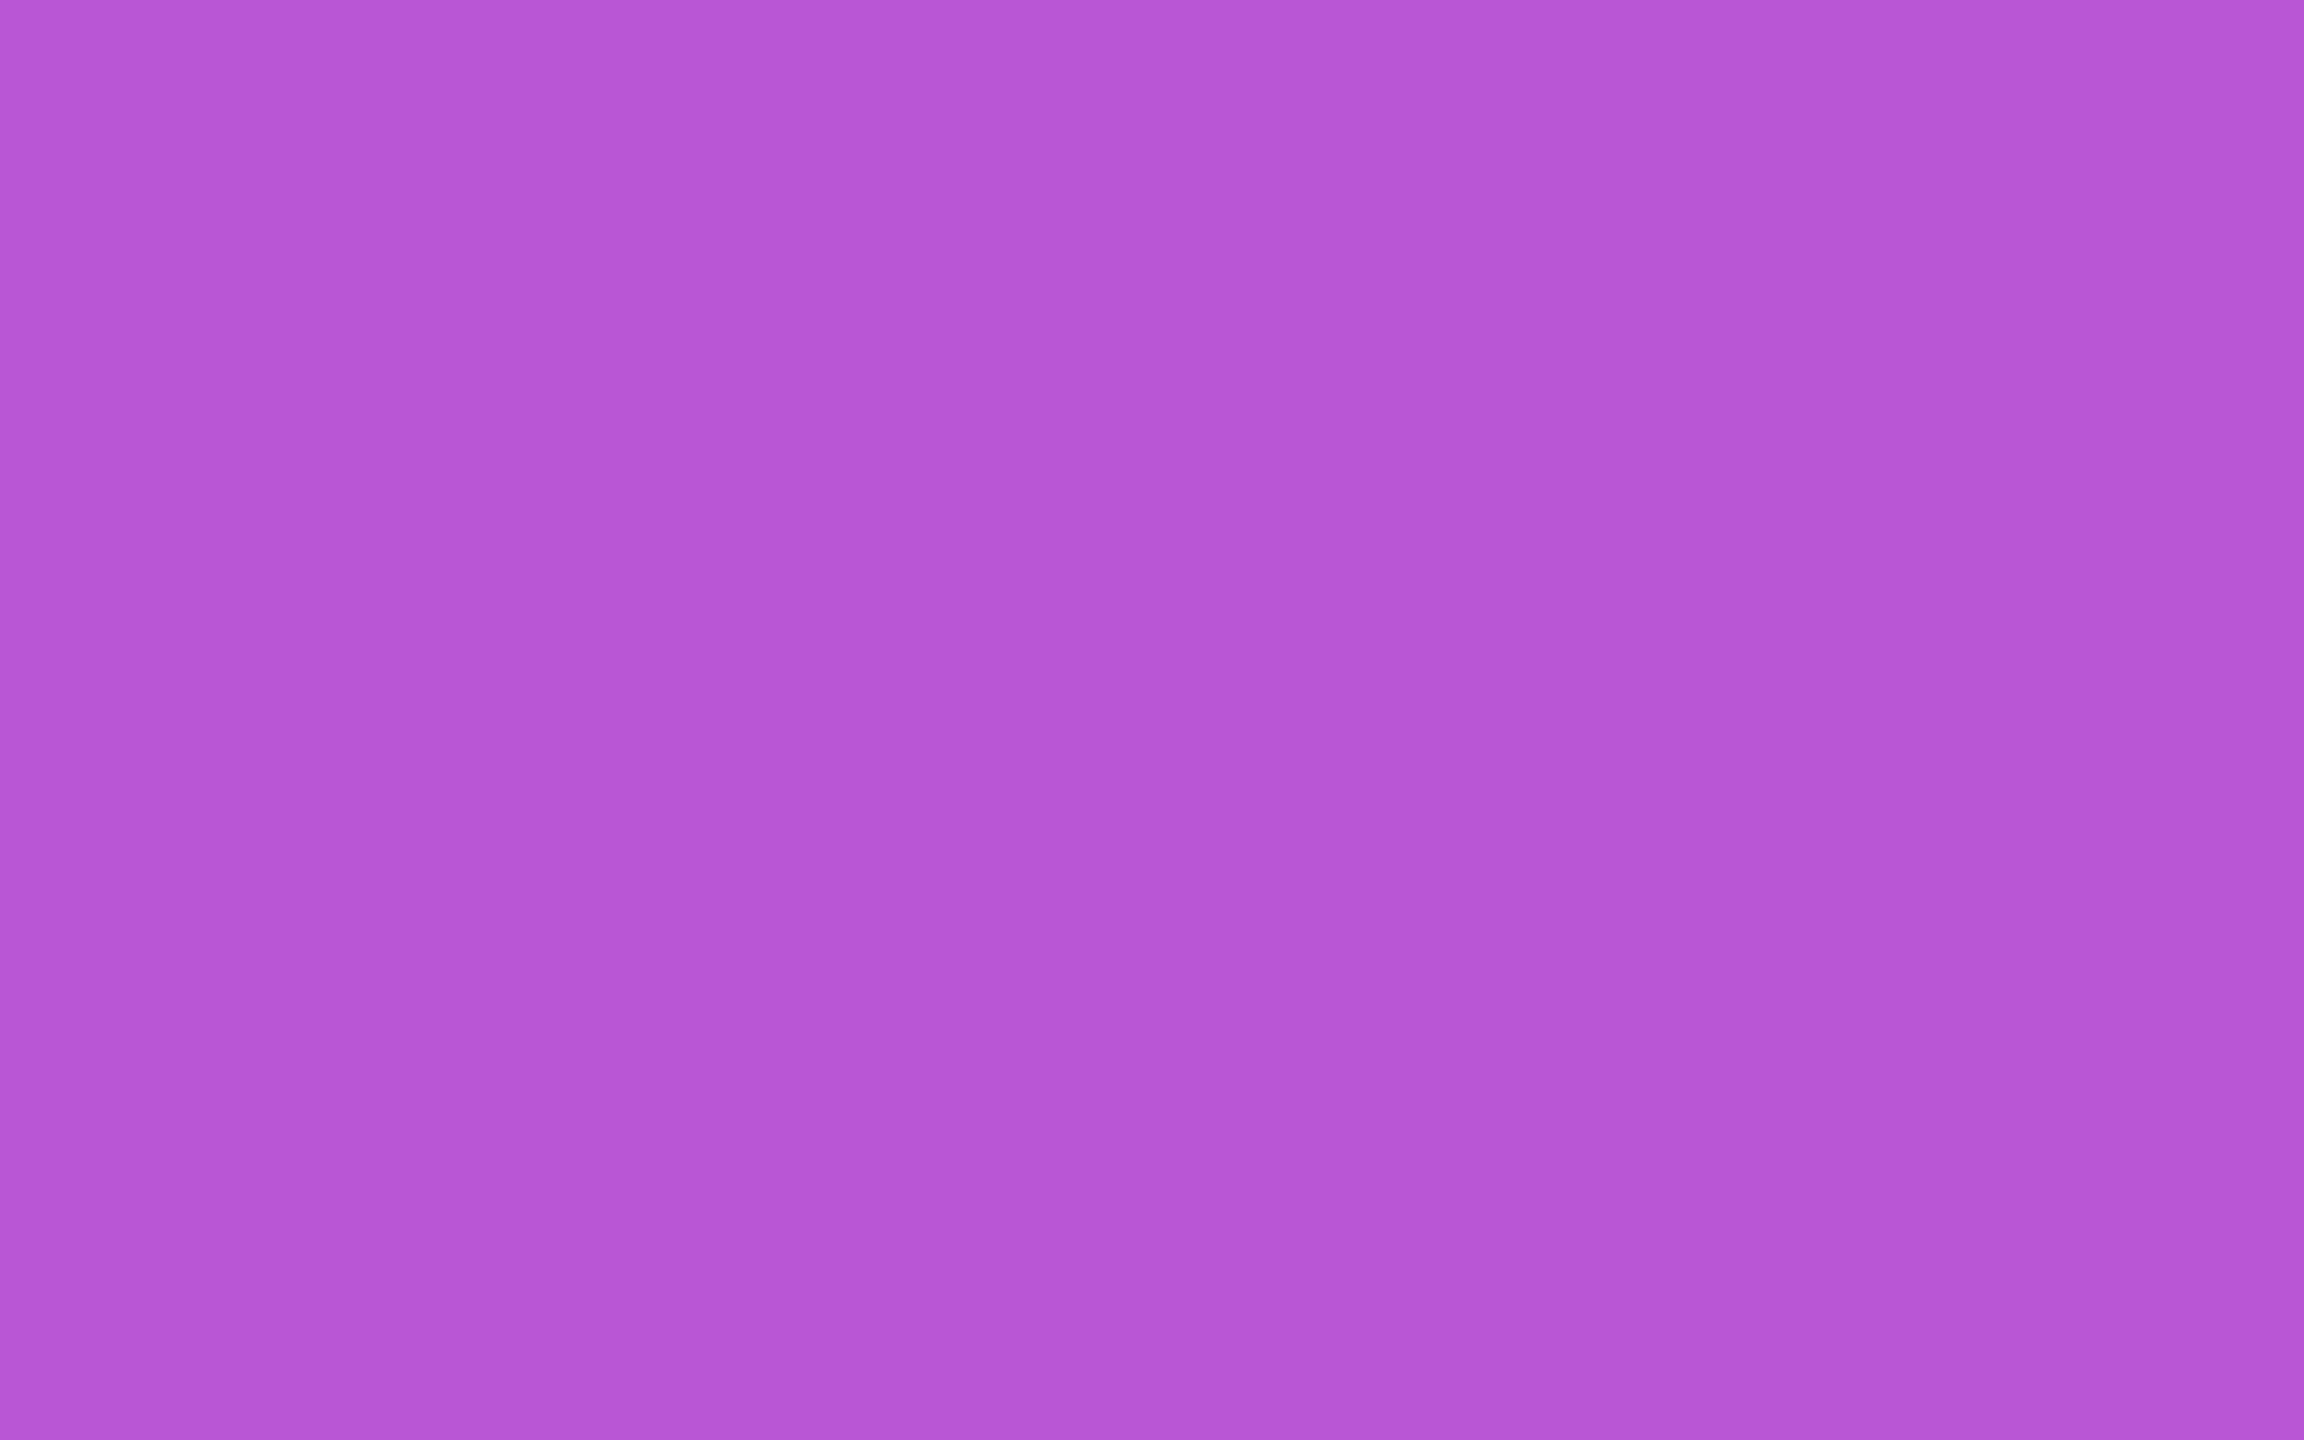 2304x1440 Medium Orchid Solid Color Background